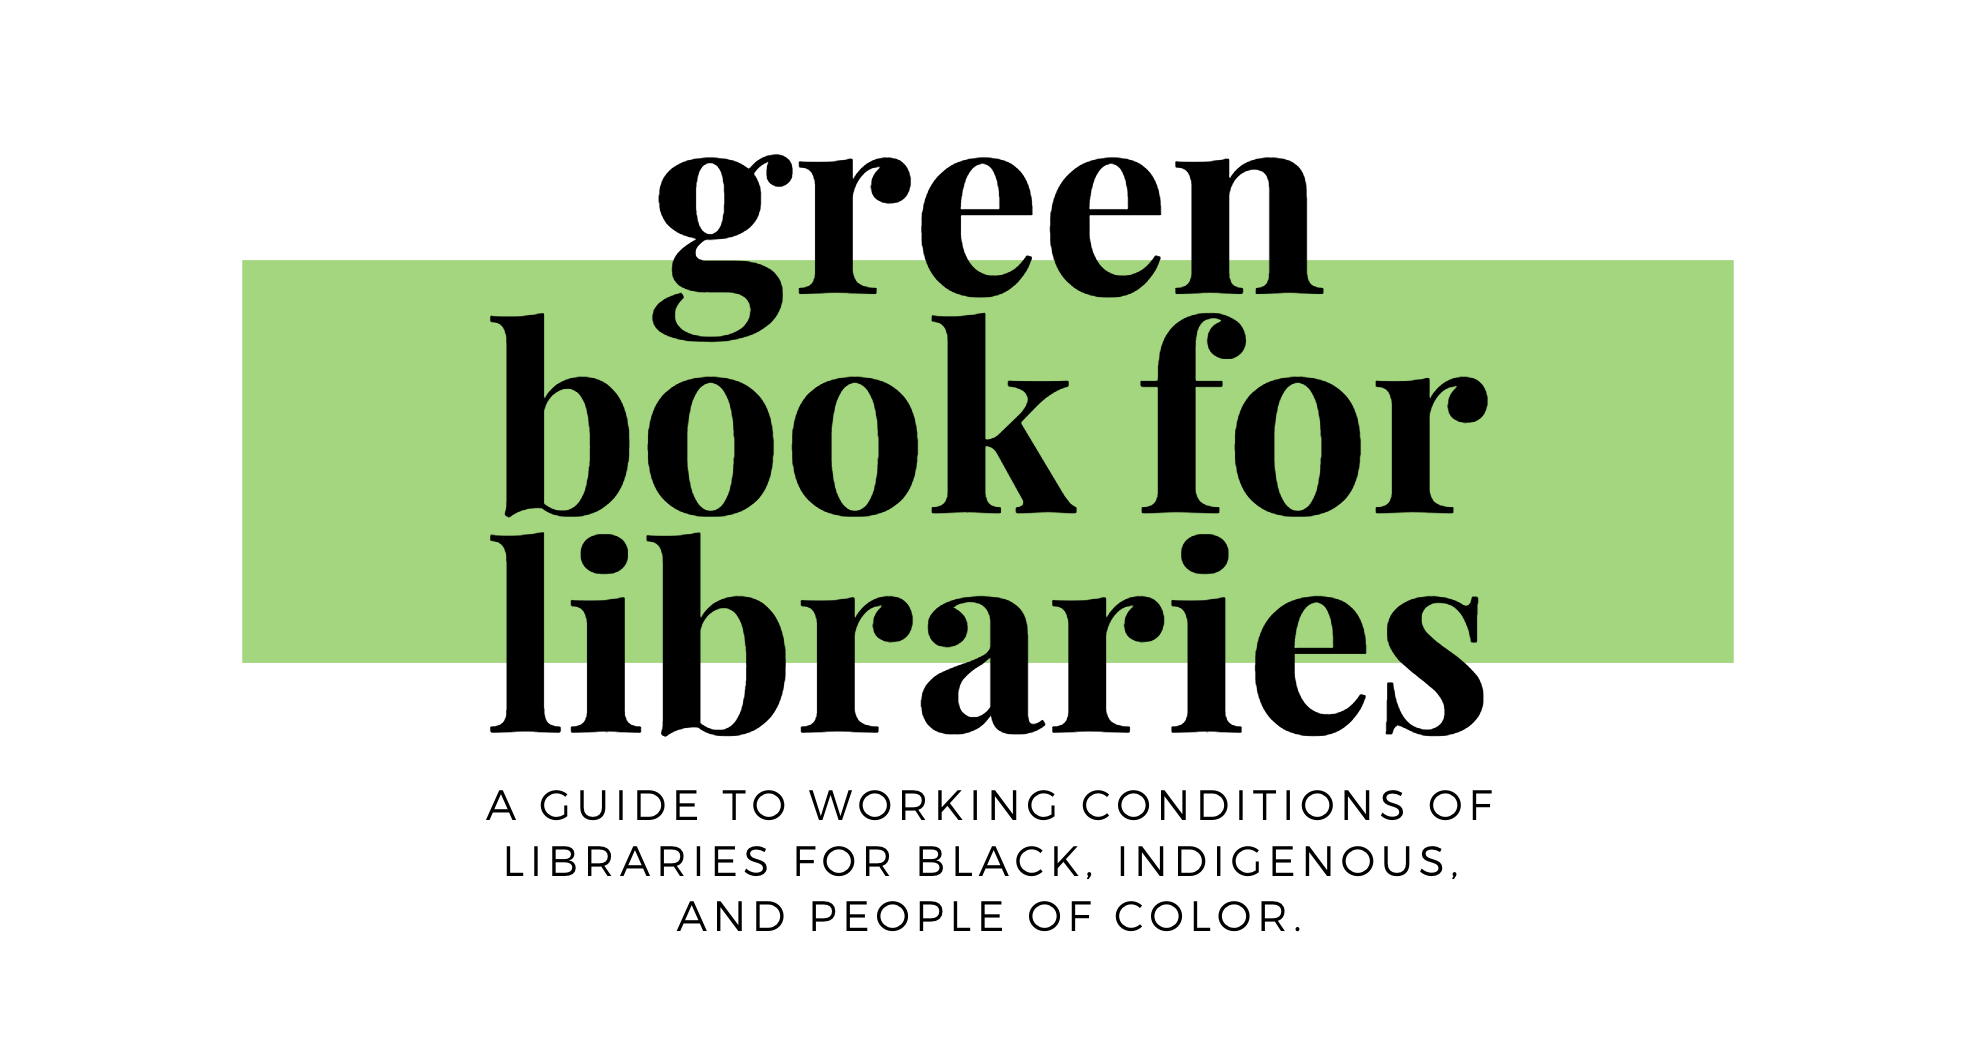 Green Book for Libraries